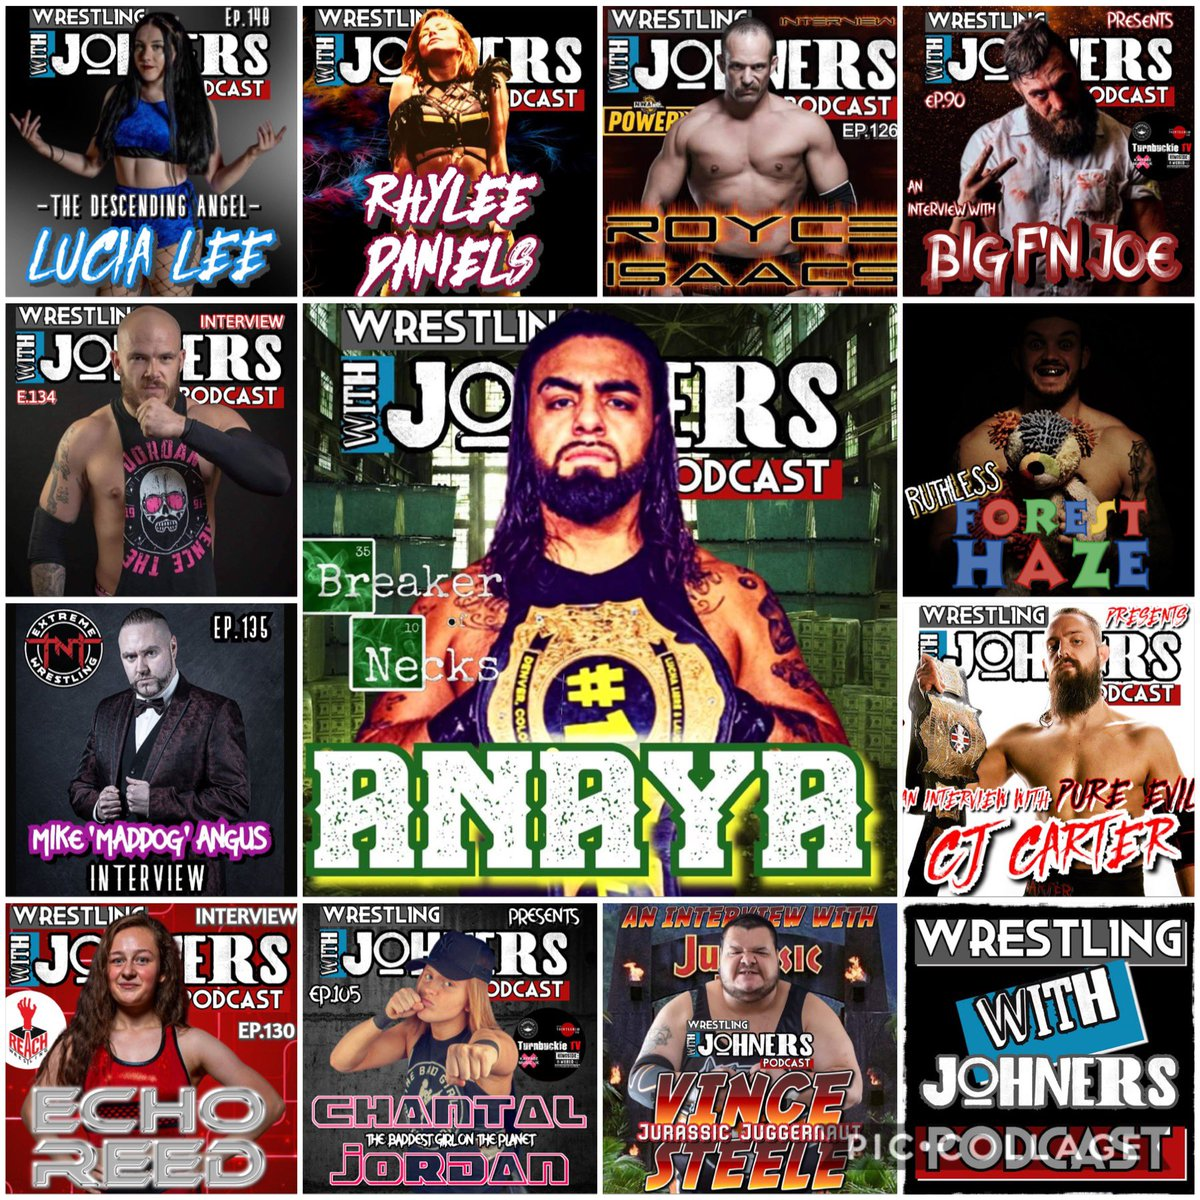 Here's just some of the fantastic guests that have appeared on @withjohners_pod, make sure to check them out!  @BreakerofNecks   Apple https://t.co/rz8u4Pm2OL  Spotify https://t.co/A7Sue6bR2e  #wrestling #WrestlingCommunity #aew #wwe #podcast https://t.co/y0ajX7VQr9